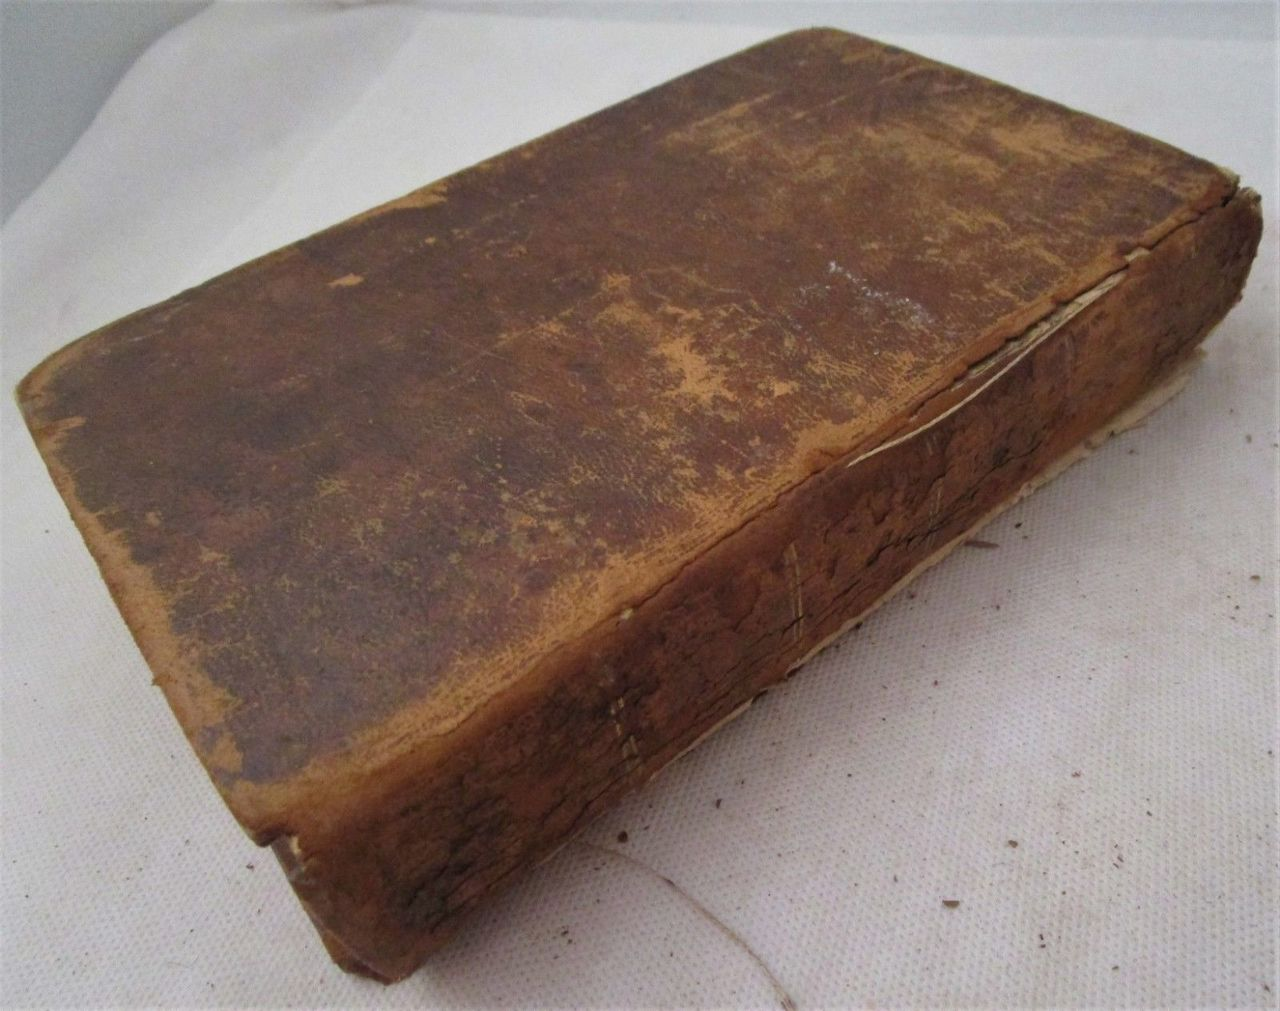 AN AUTHENTIC NARRATIVE OF THE LOSS OF THE AMERICAN BRIG COMMERCE; Shipwrecked and Enslaved in Morocco, by James Riley - 1817